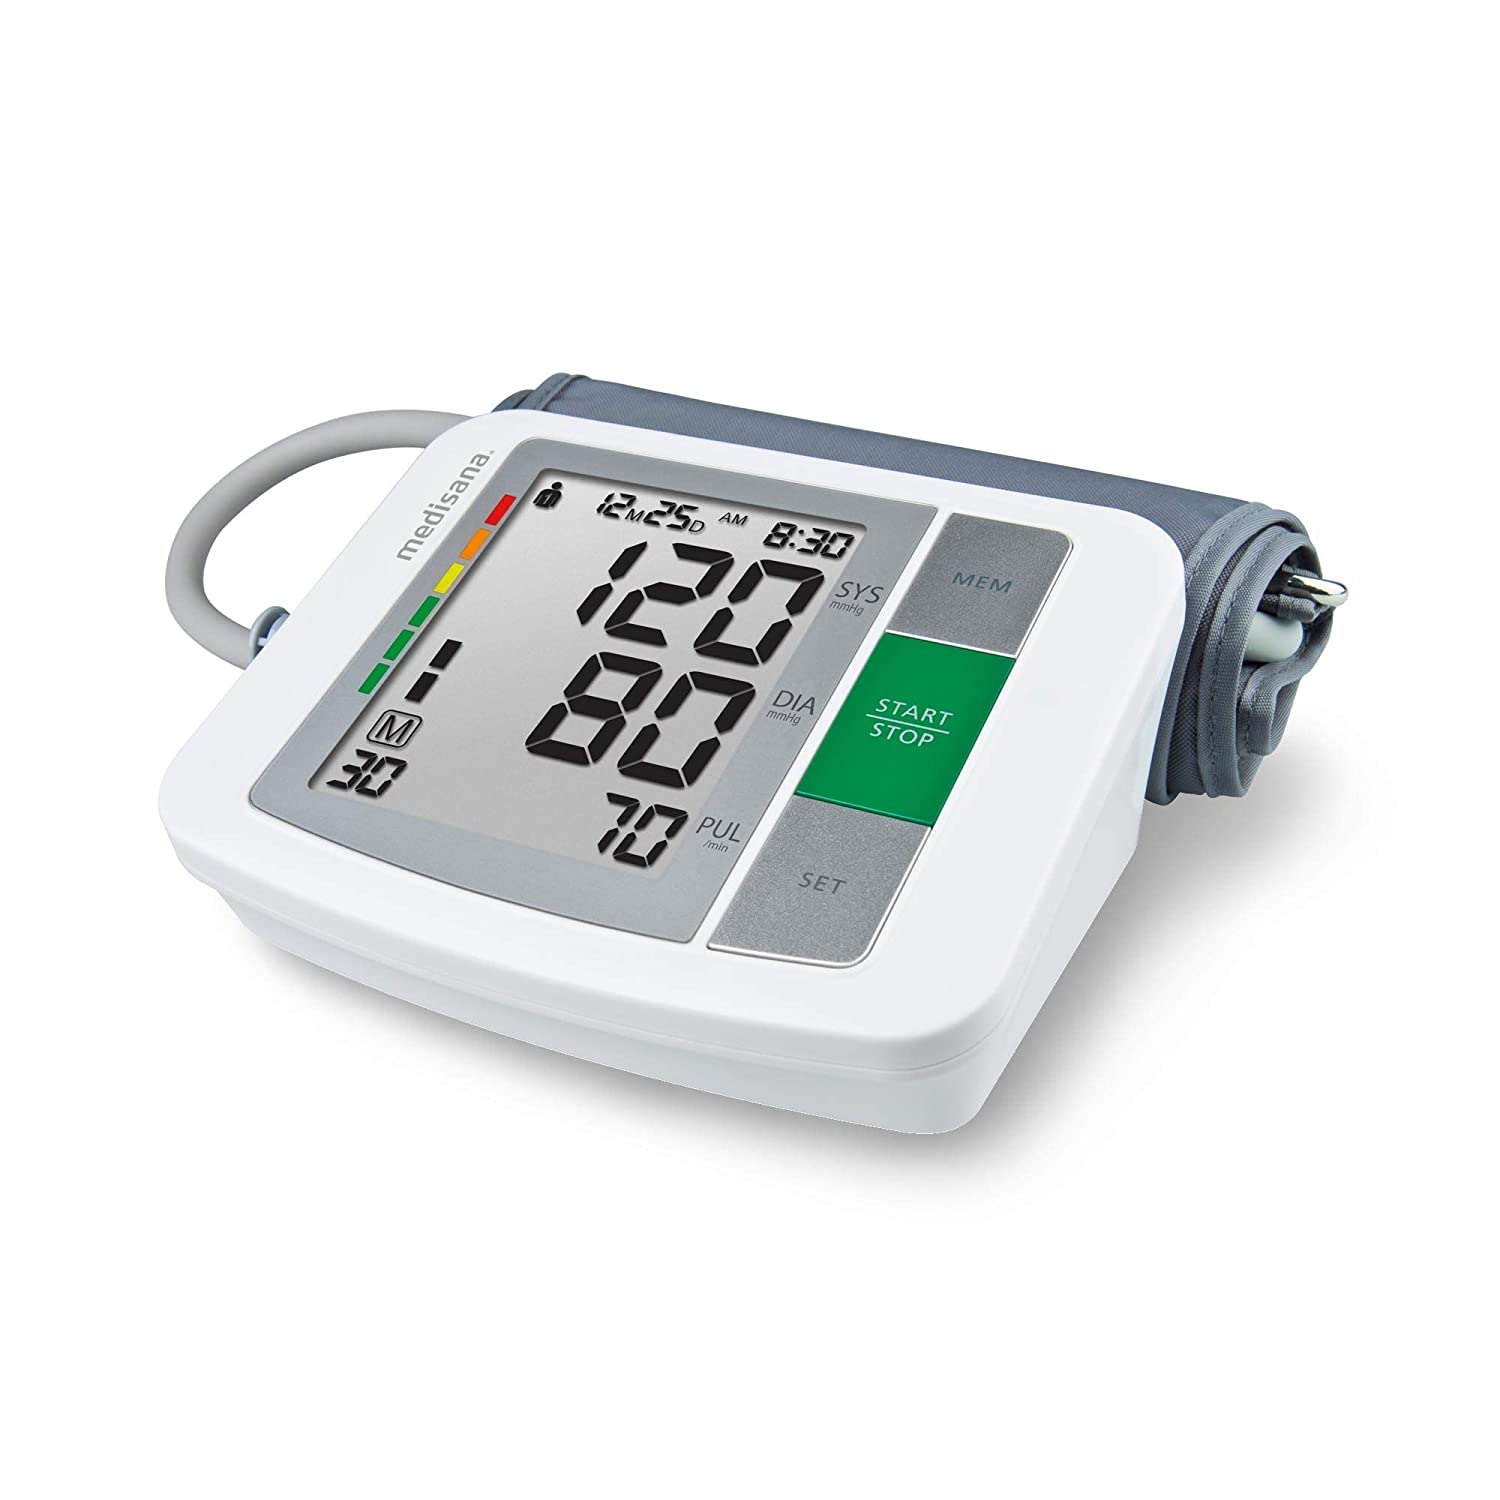 Medisana Blood Pressure Monitor: Automatic Upper Arm Machine Accurate Adjustable Digital BP Cuff Kit for Home Use Includes Batteries, Carrying Case